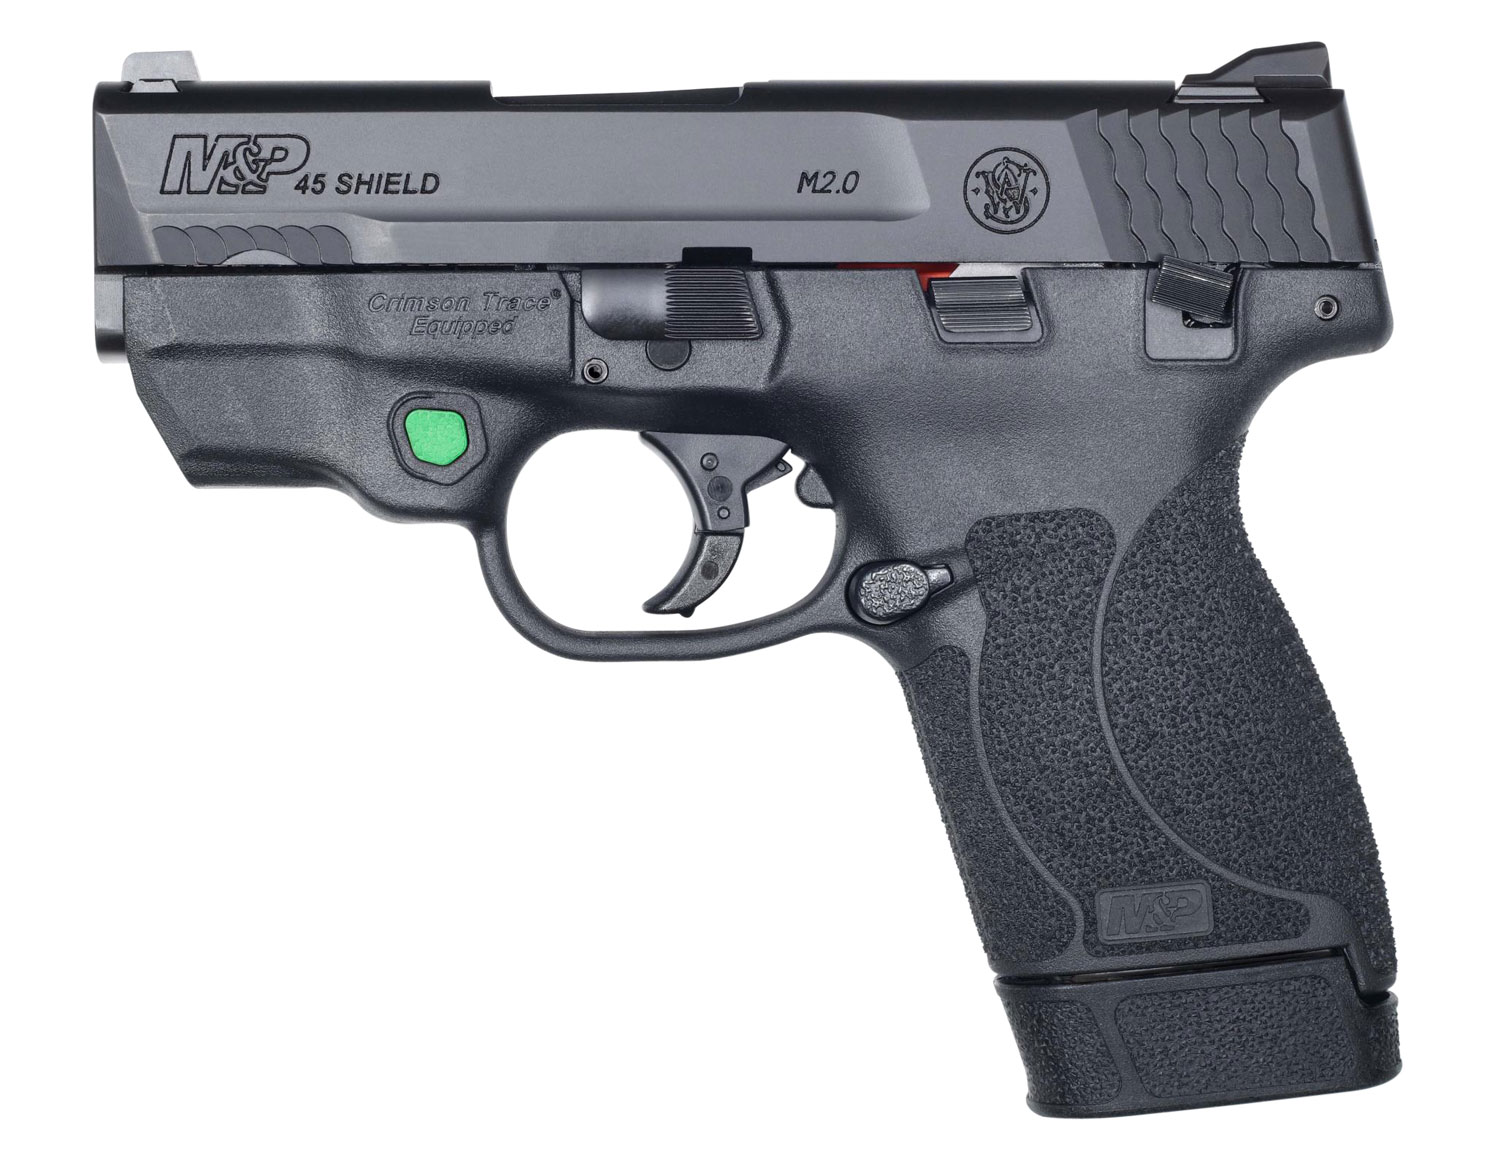 S&W M&P45SHLD  12089   45 3.3  TS  2.0 CT GRN